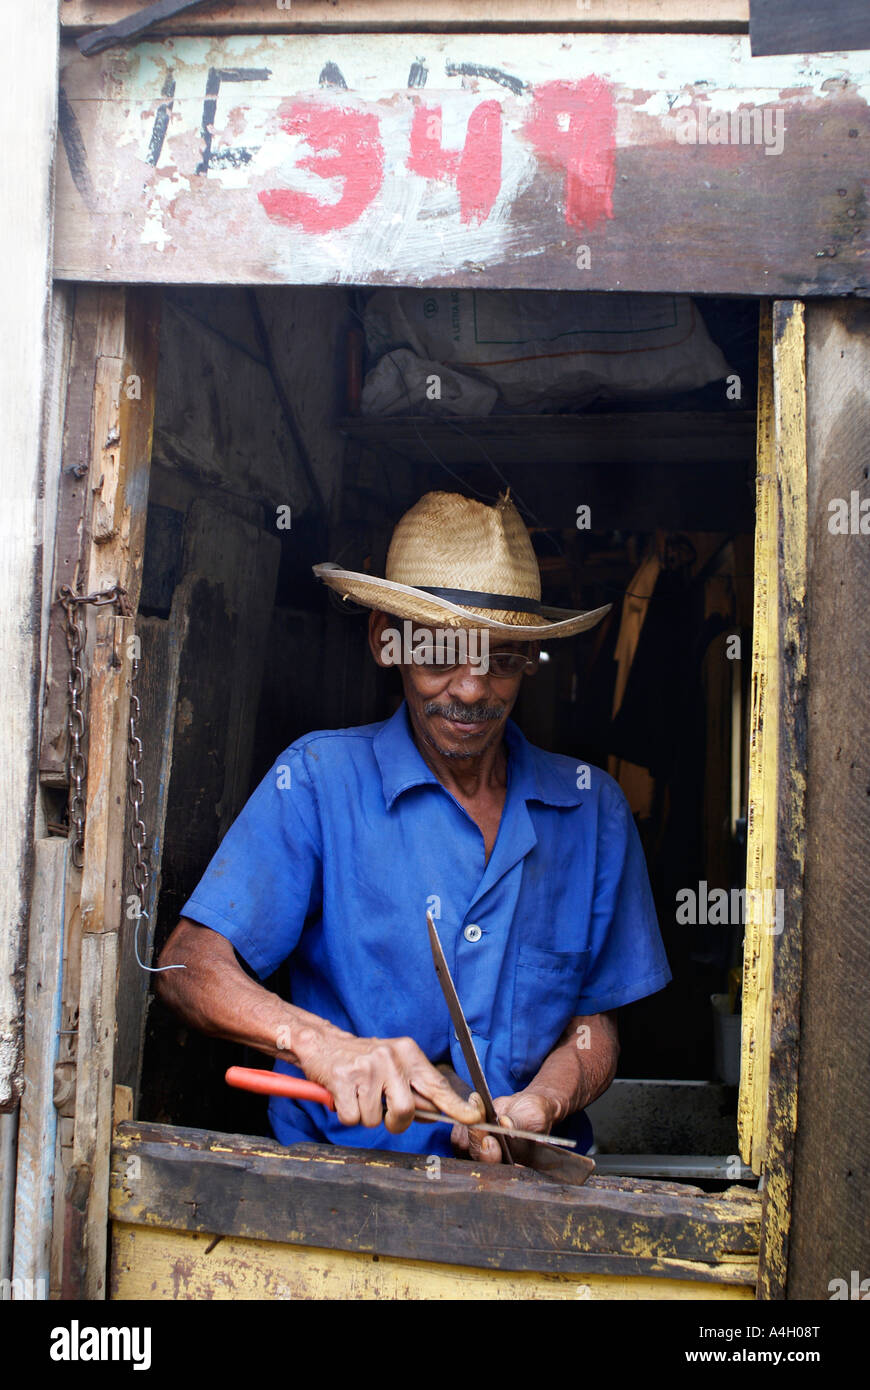 Man with hat sharpening a scissor in a favela, Sao Paulo, Brazil - Stock Image